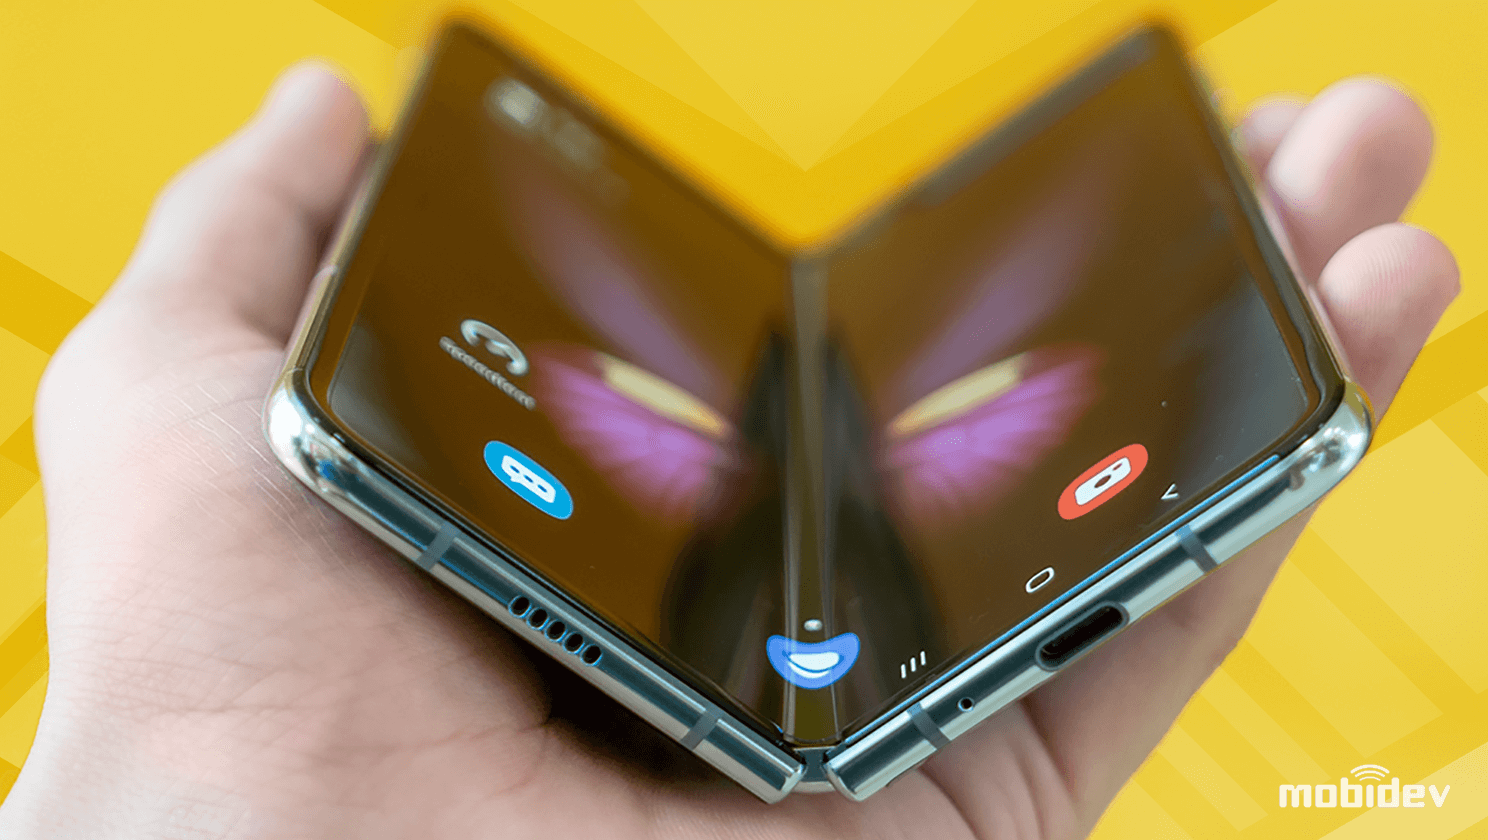 How to develop apps for foldable dual-screen smartphones